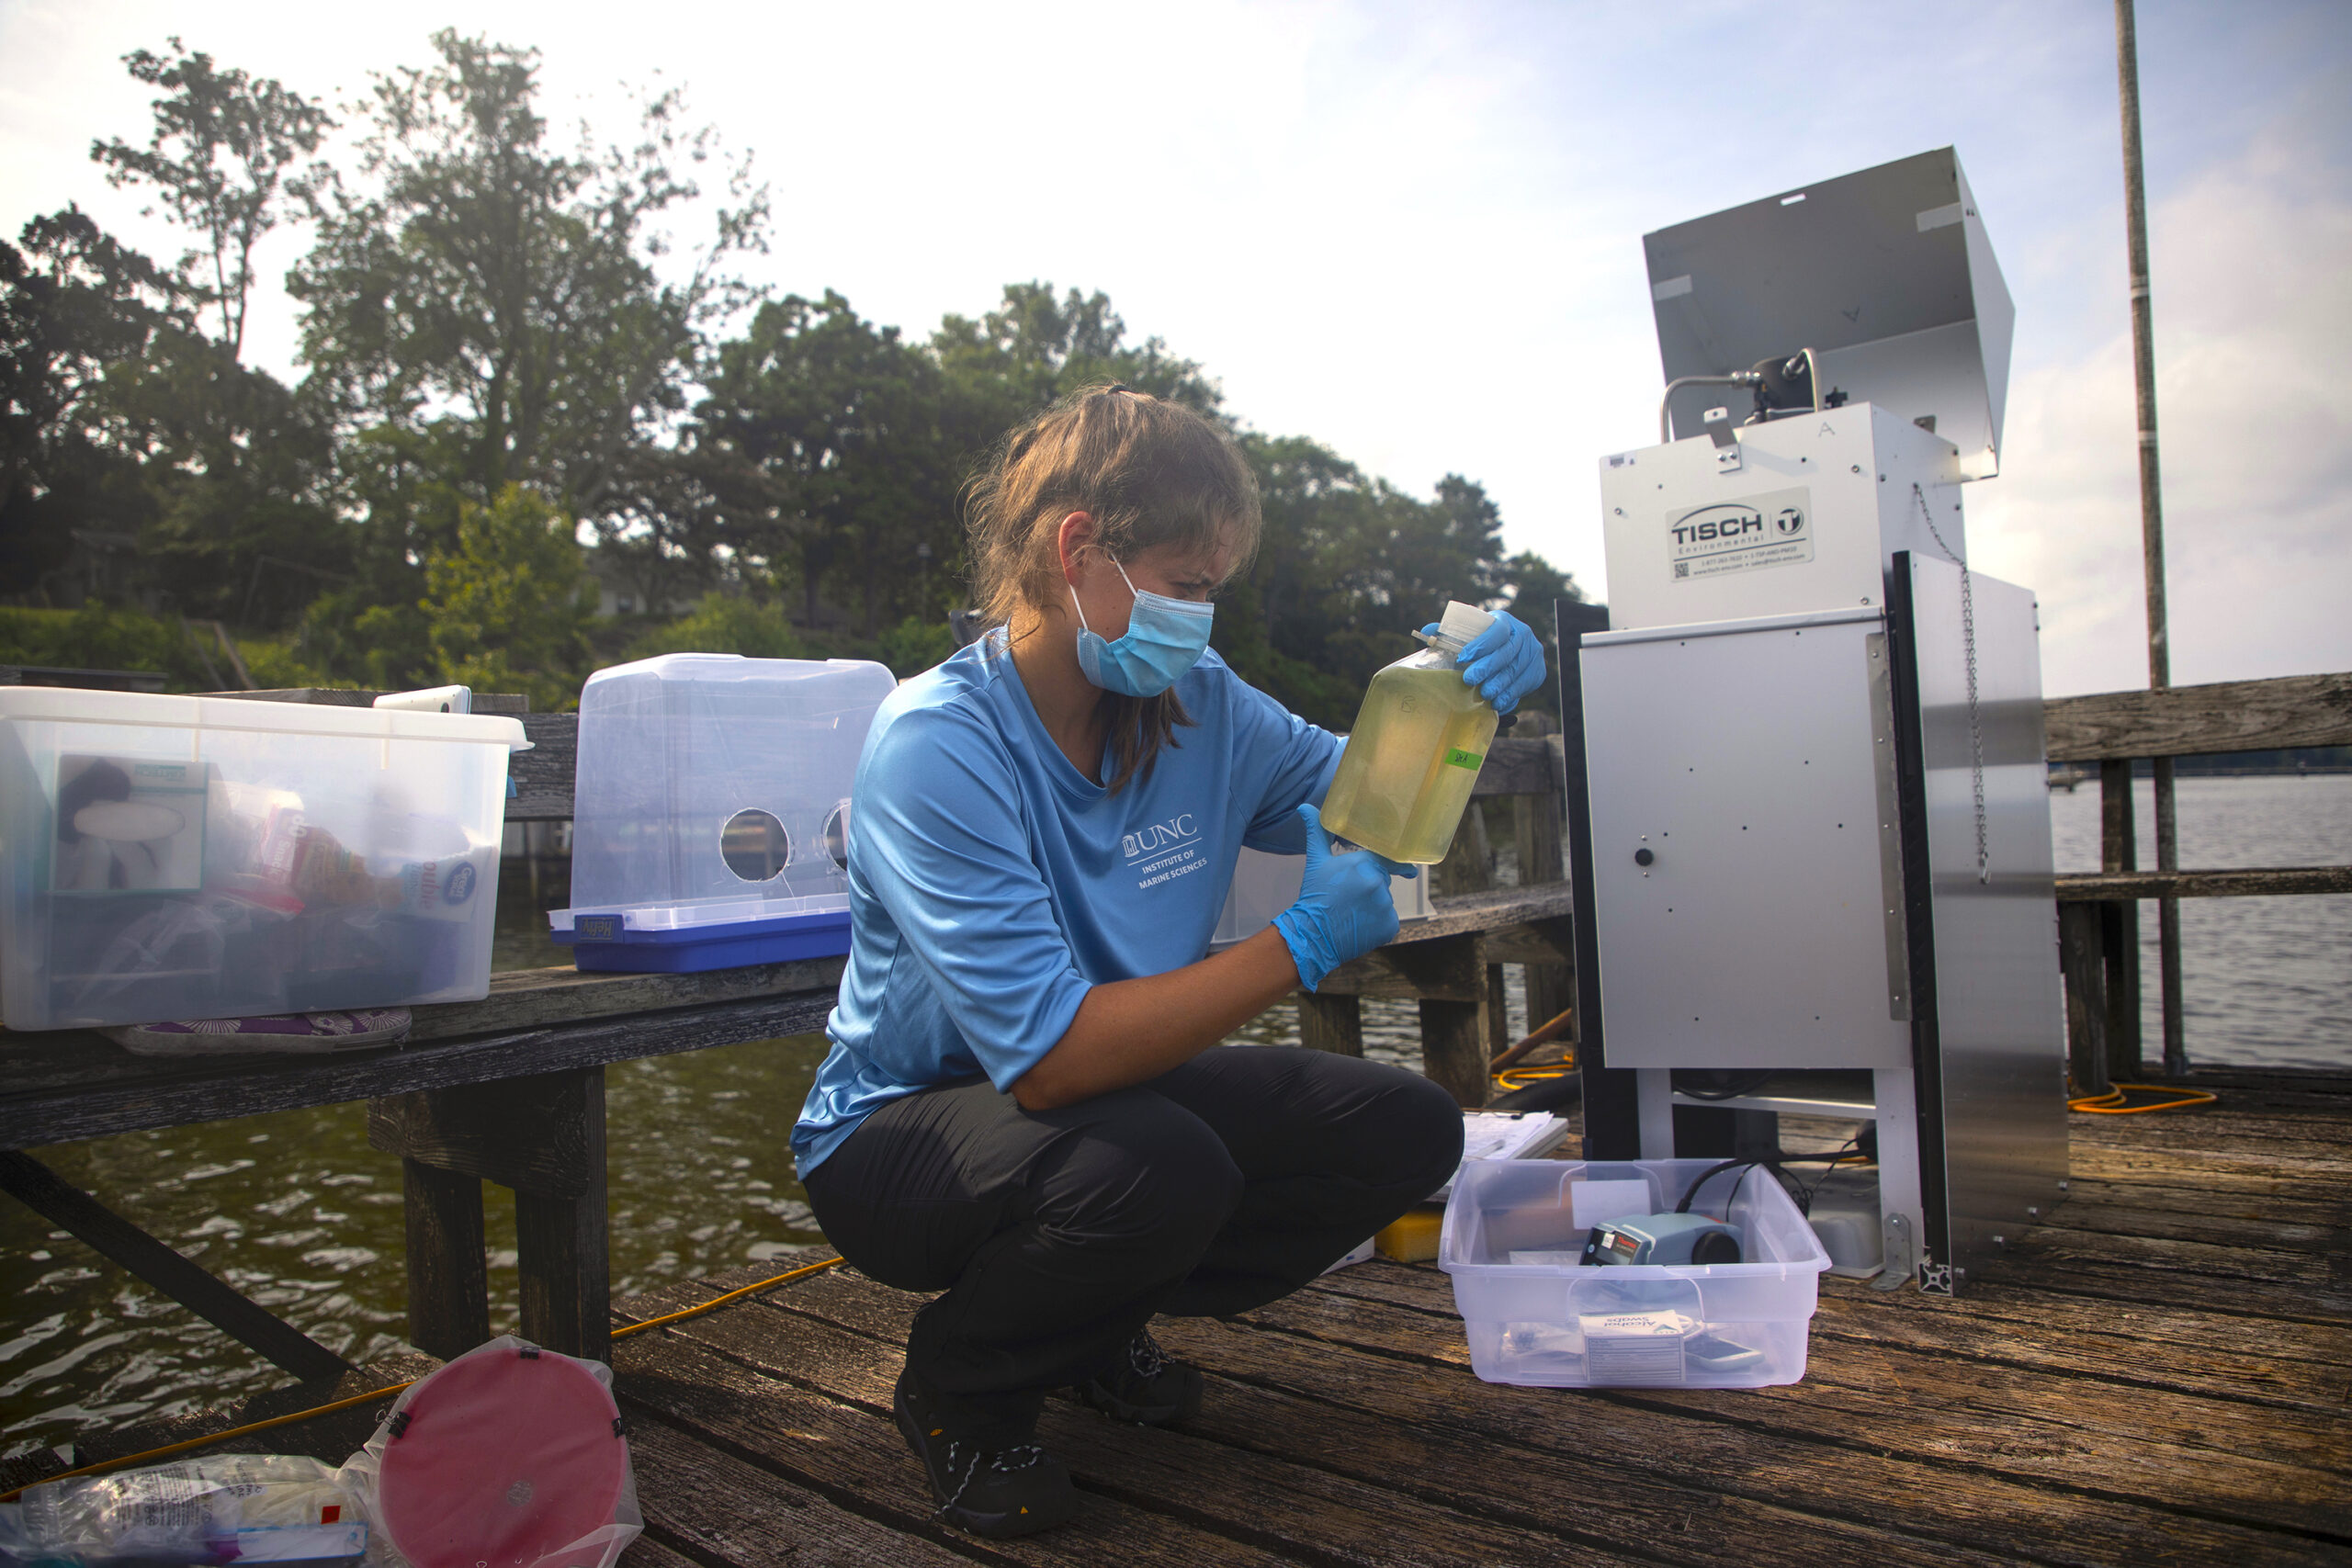 Haley Plaas, the 2020 North Carolina Sea Grant and Albemarle-Pamlico National Estuary Partnership joint fellow, processes algal bloom samples for her research with the Paerl Lab at the University of North Carolina's Institute of Marine Sciences.